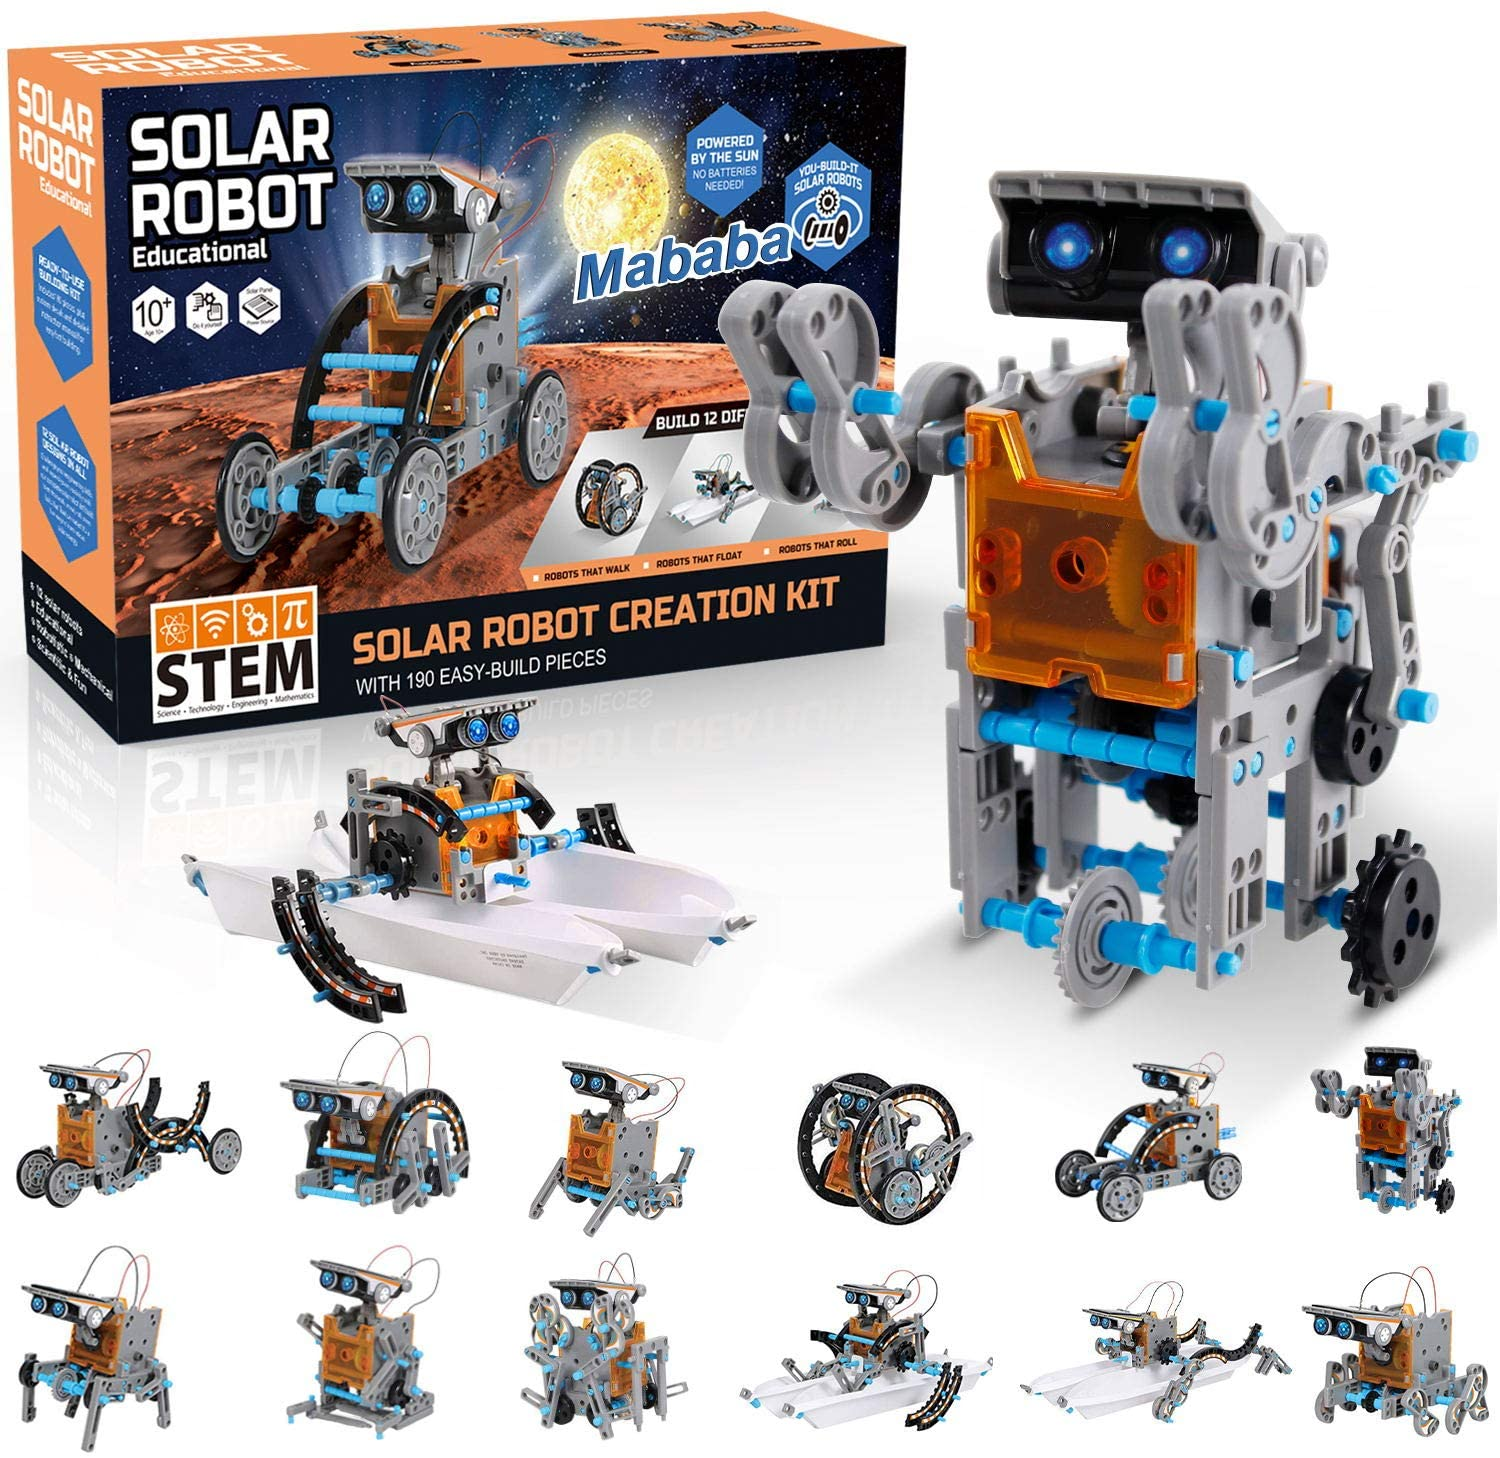 mababa STEM 12-In-1 Solar Powered Robot Kit, 190-Piece